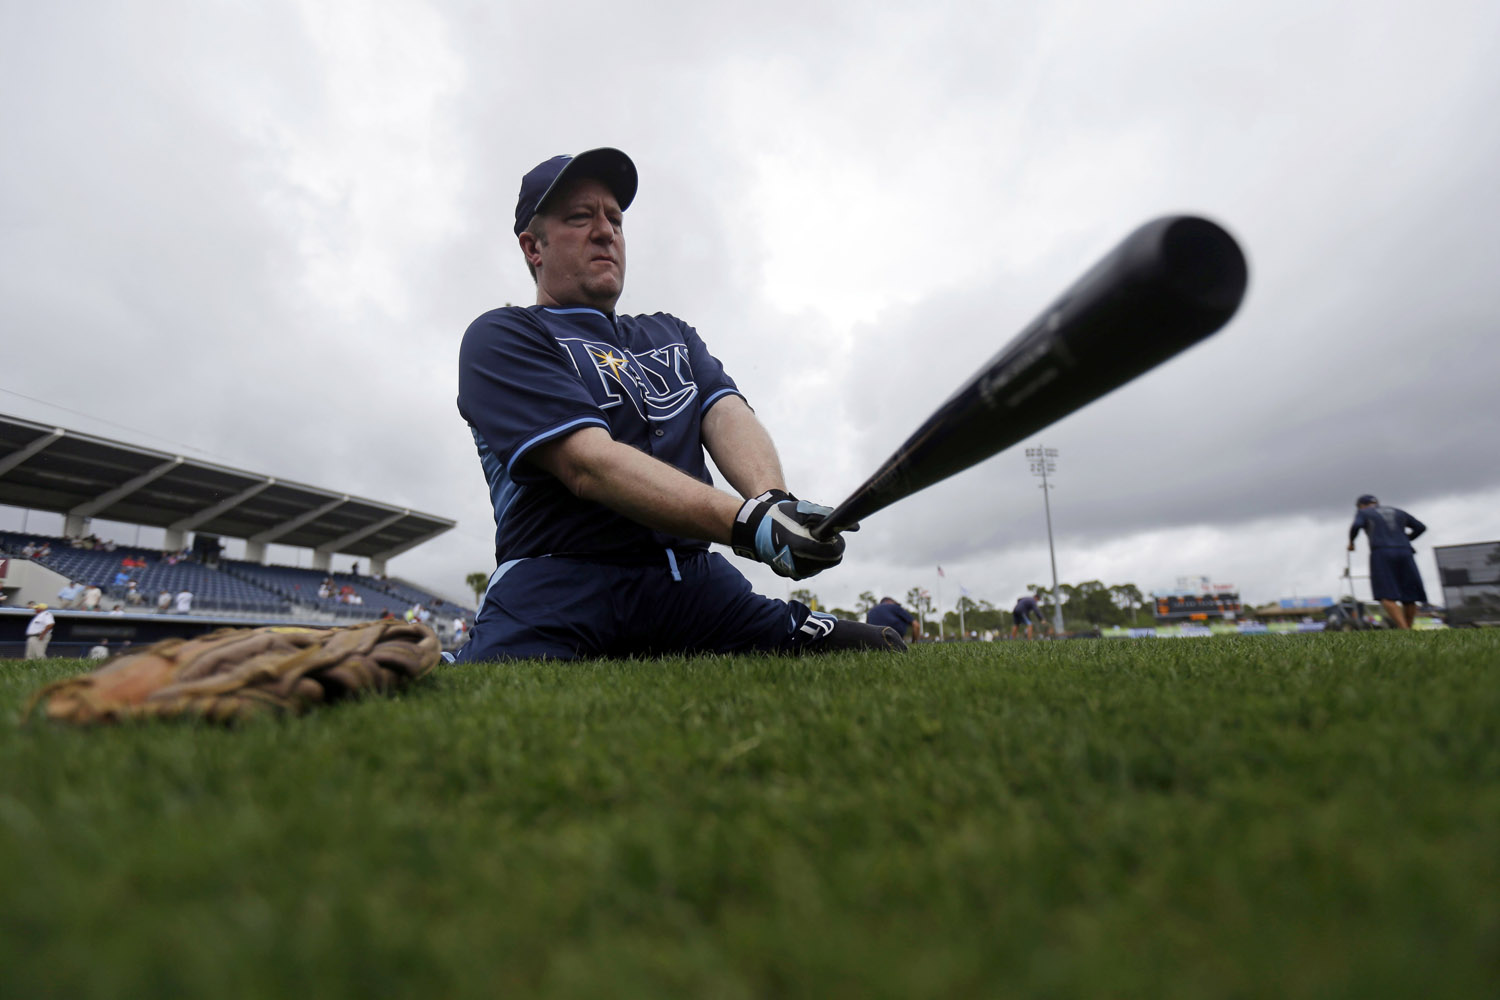 Mar. 25, 2014. Double amputee Dave Stevens, of Bristol, Conn., who will be throwing out the first pitch, swings a bat before an exhibition game between the Tampa Bay Rays and the Boston Red Sox in Port Charlotte, Fla.